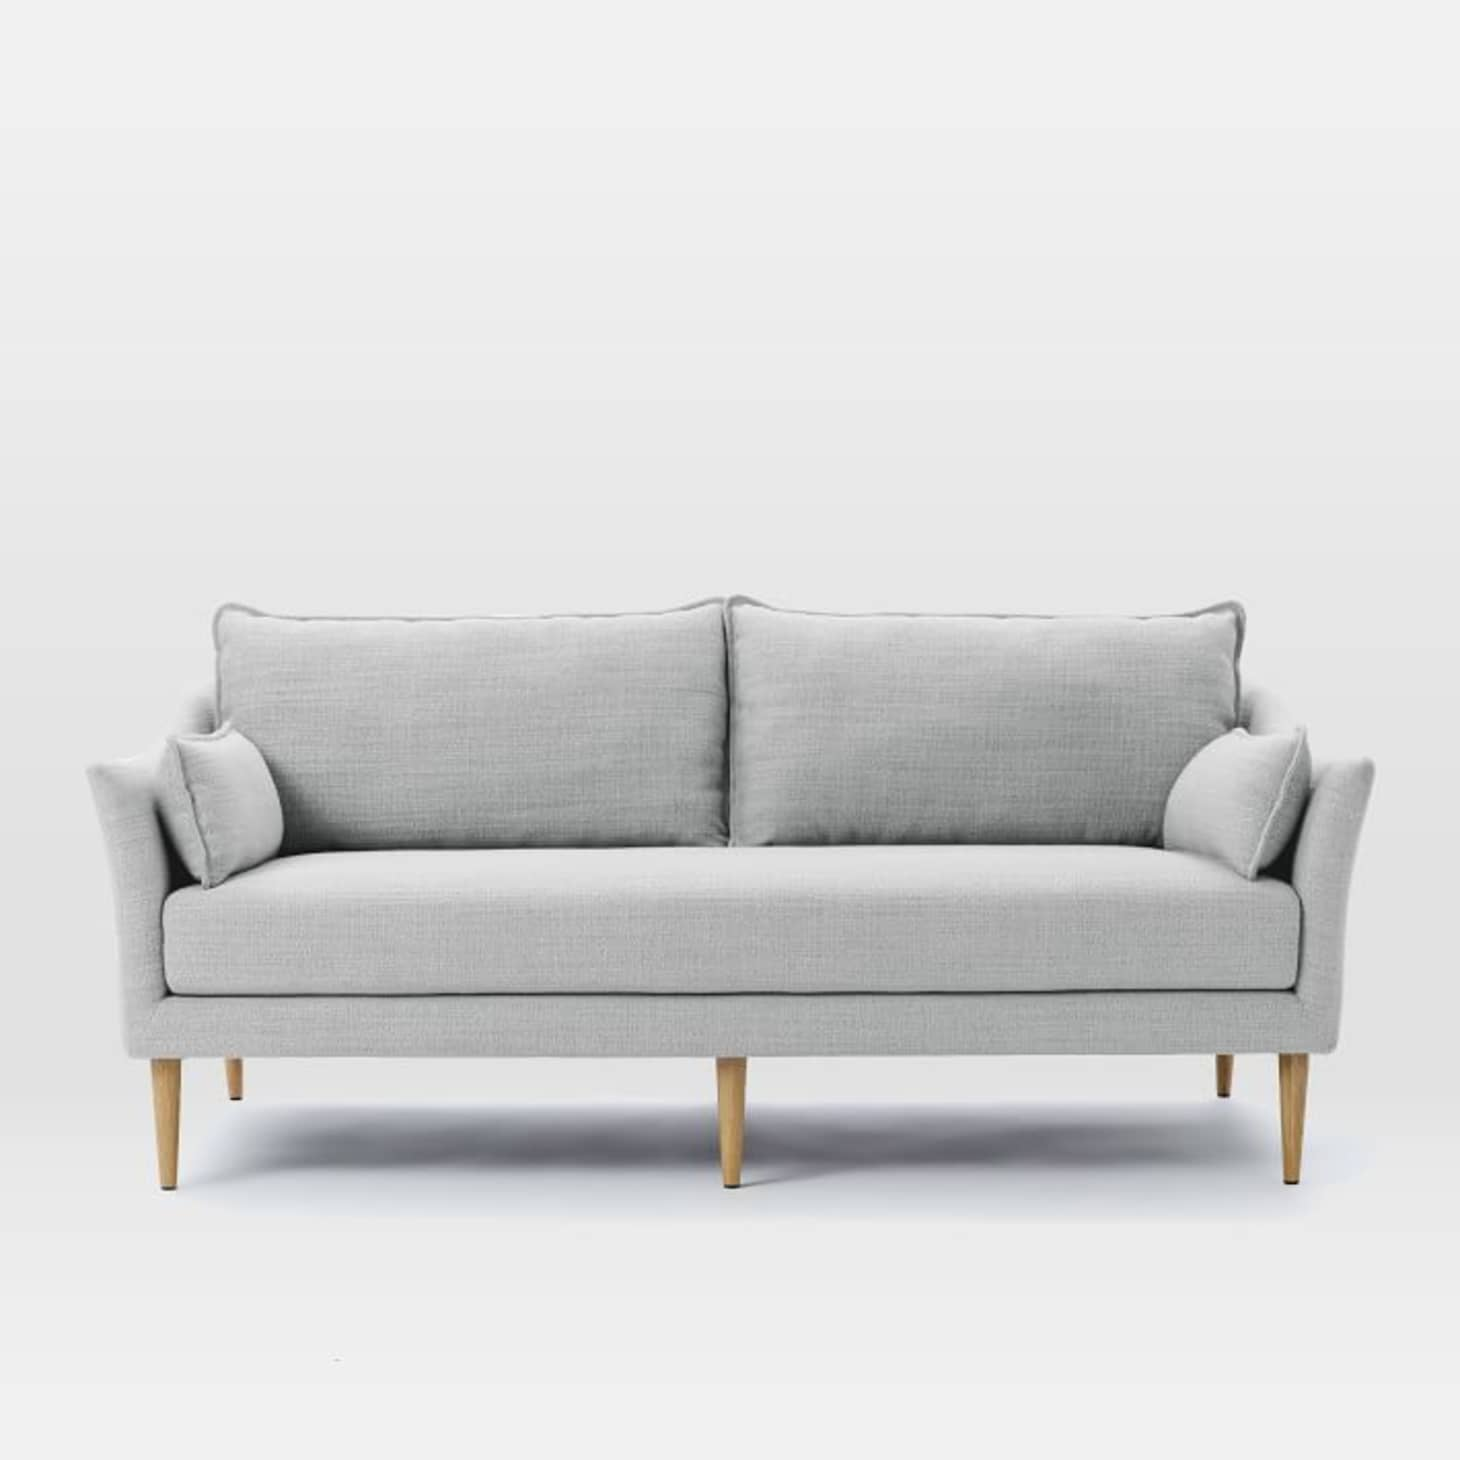 Cool The Most Comfortable Sofas At West Elm Tested Reviewed Ocoug Best Dining Table And Chair Ideas Images Ocougorg